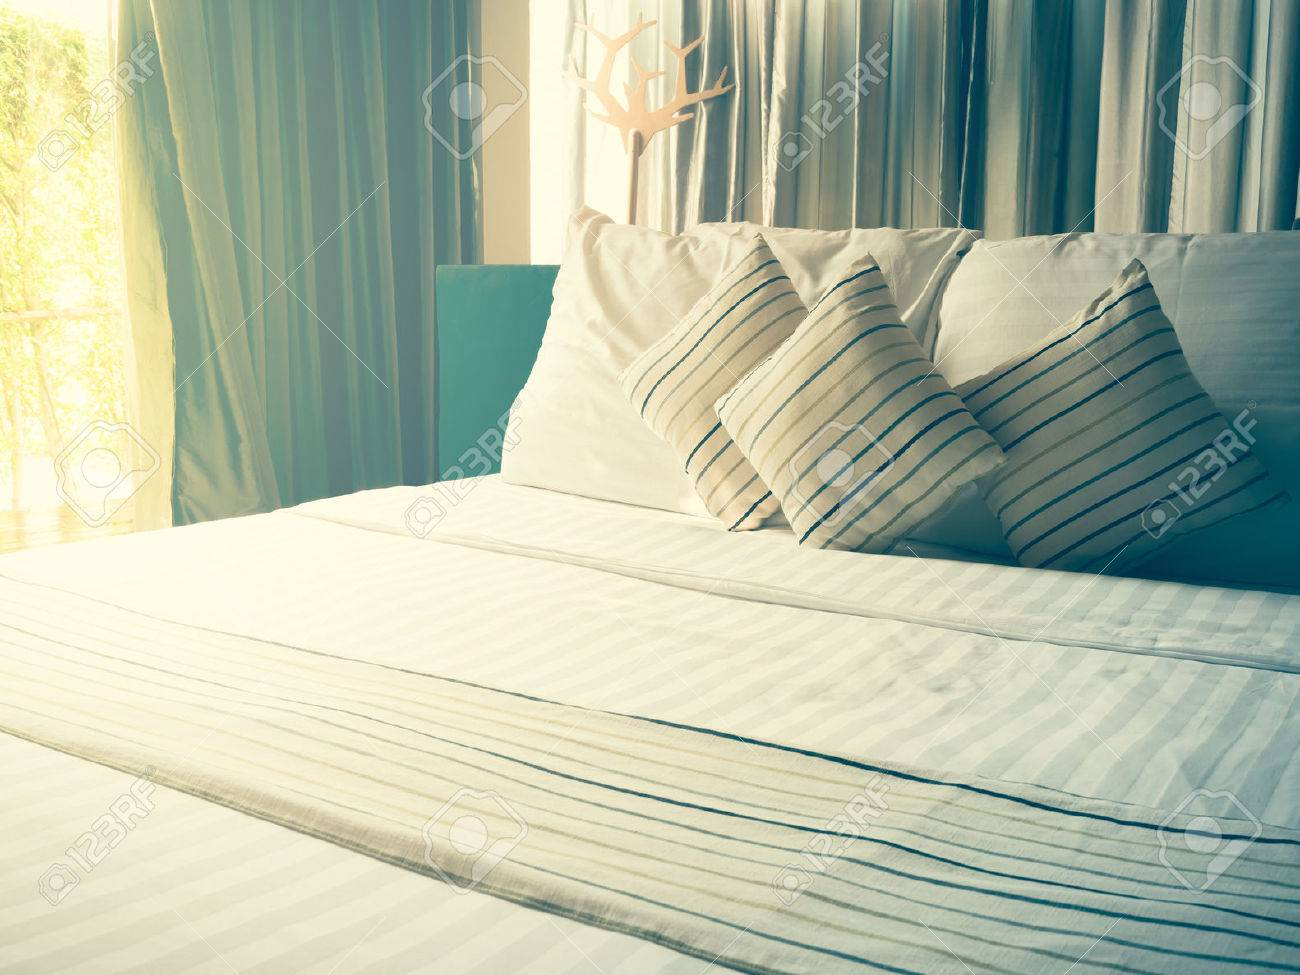 Vintage Bed Sheets And Pillow Messed Up In The Morning Stock Photo